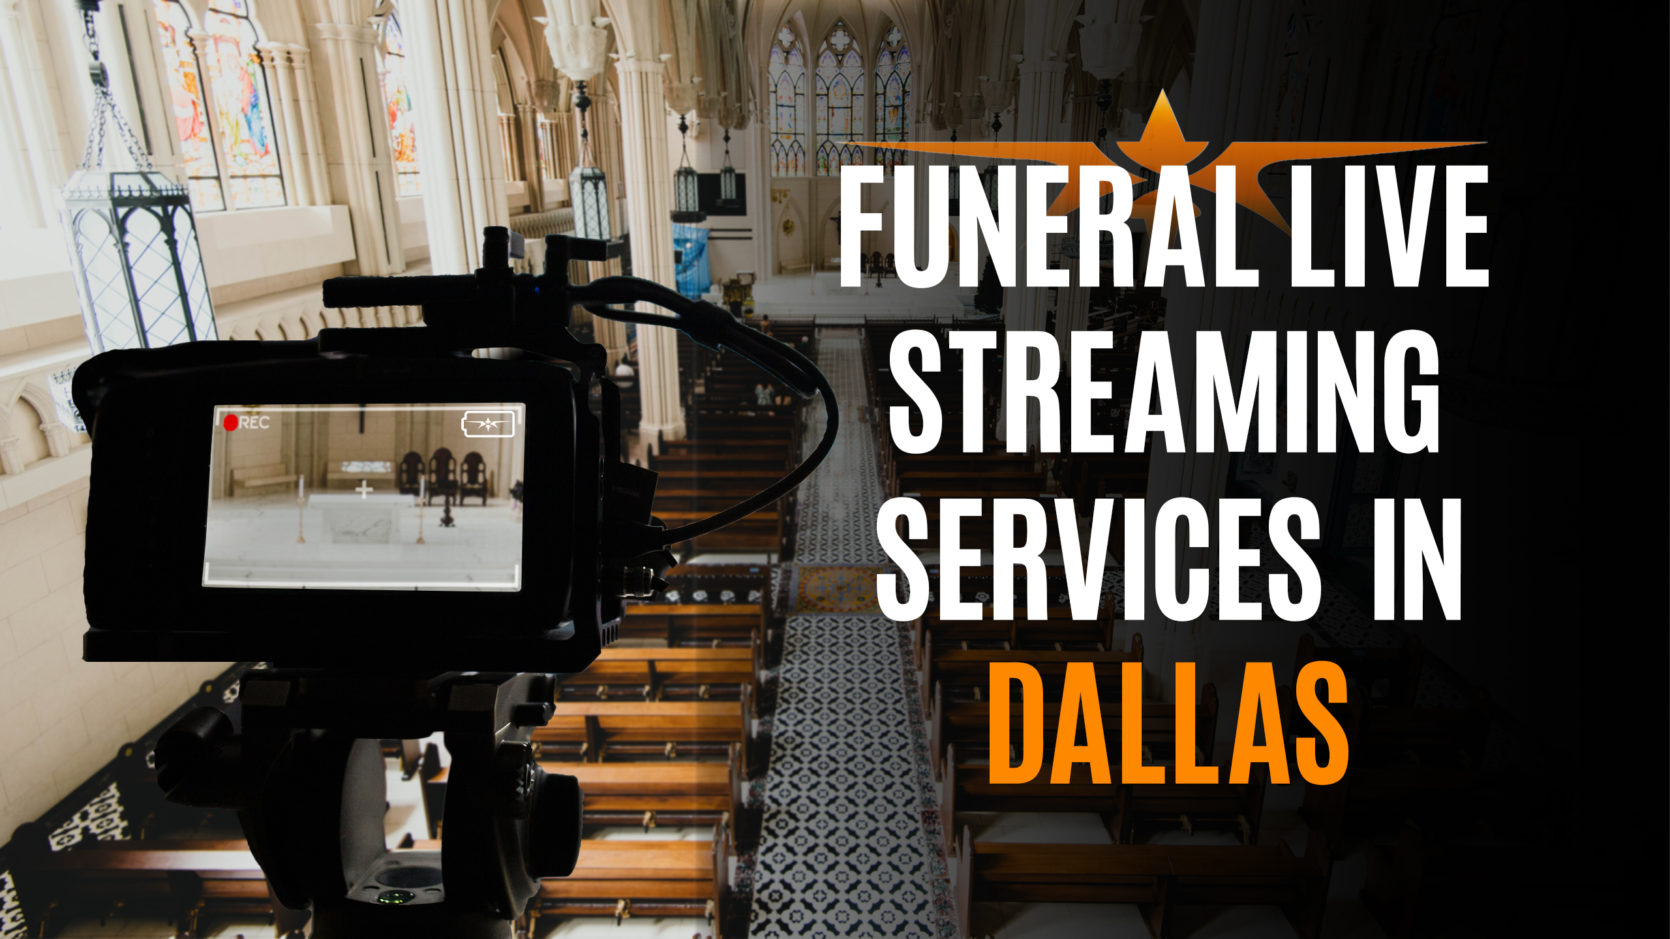 Funeral Live Streaming Services in Dallas